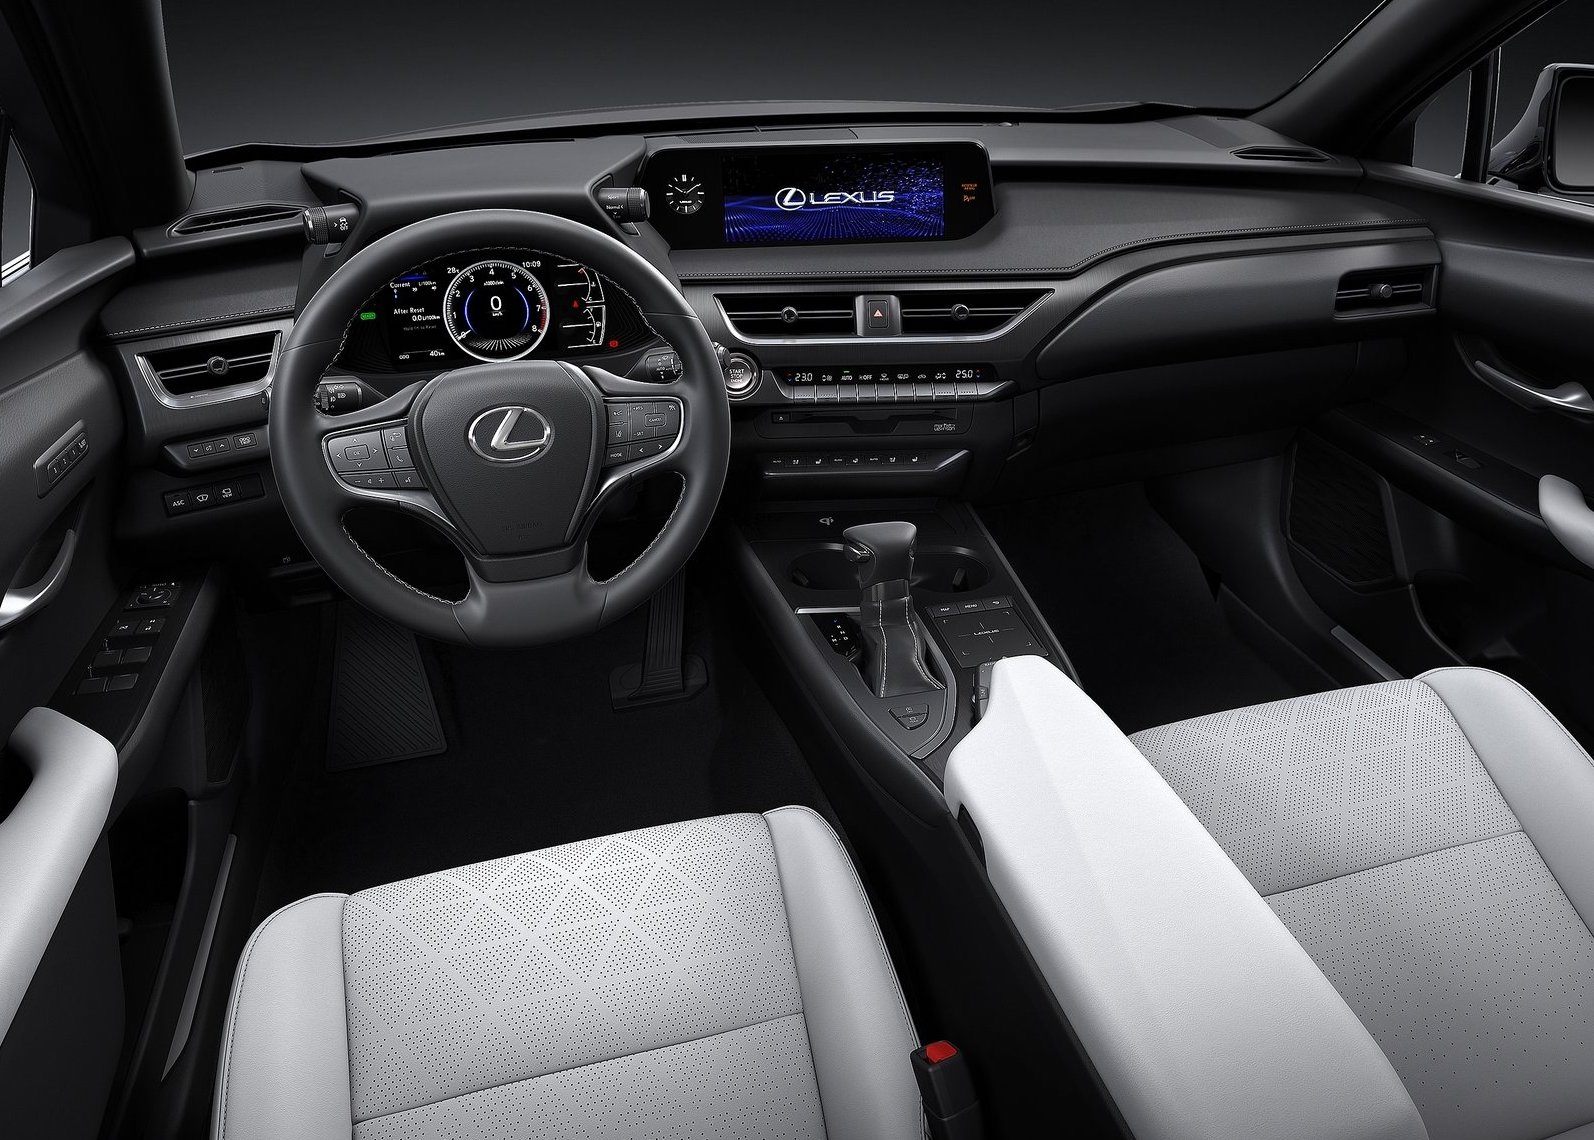 Awd Cars For Sale >> 2019 Lexus UX on sale in Australia from $44,450 ...